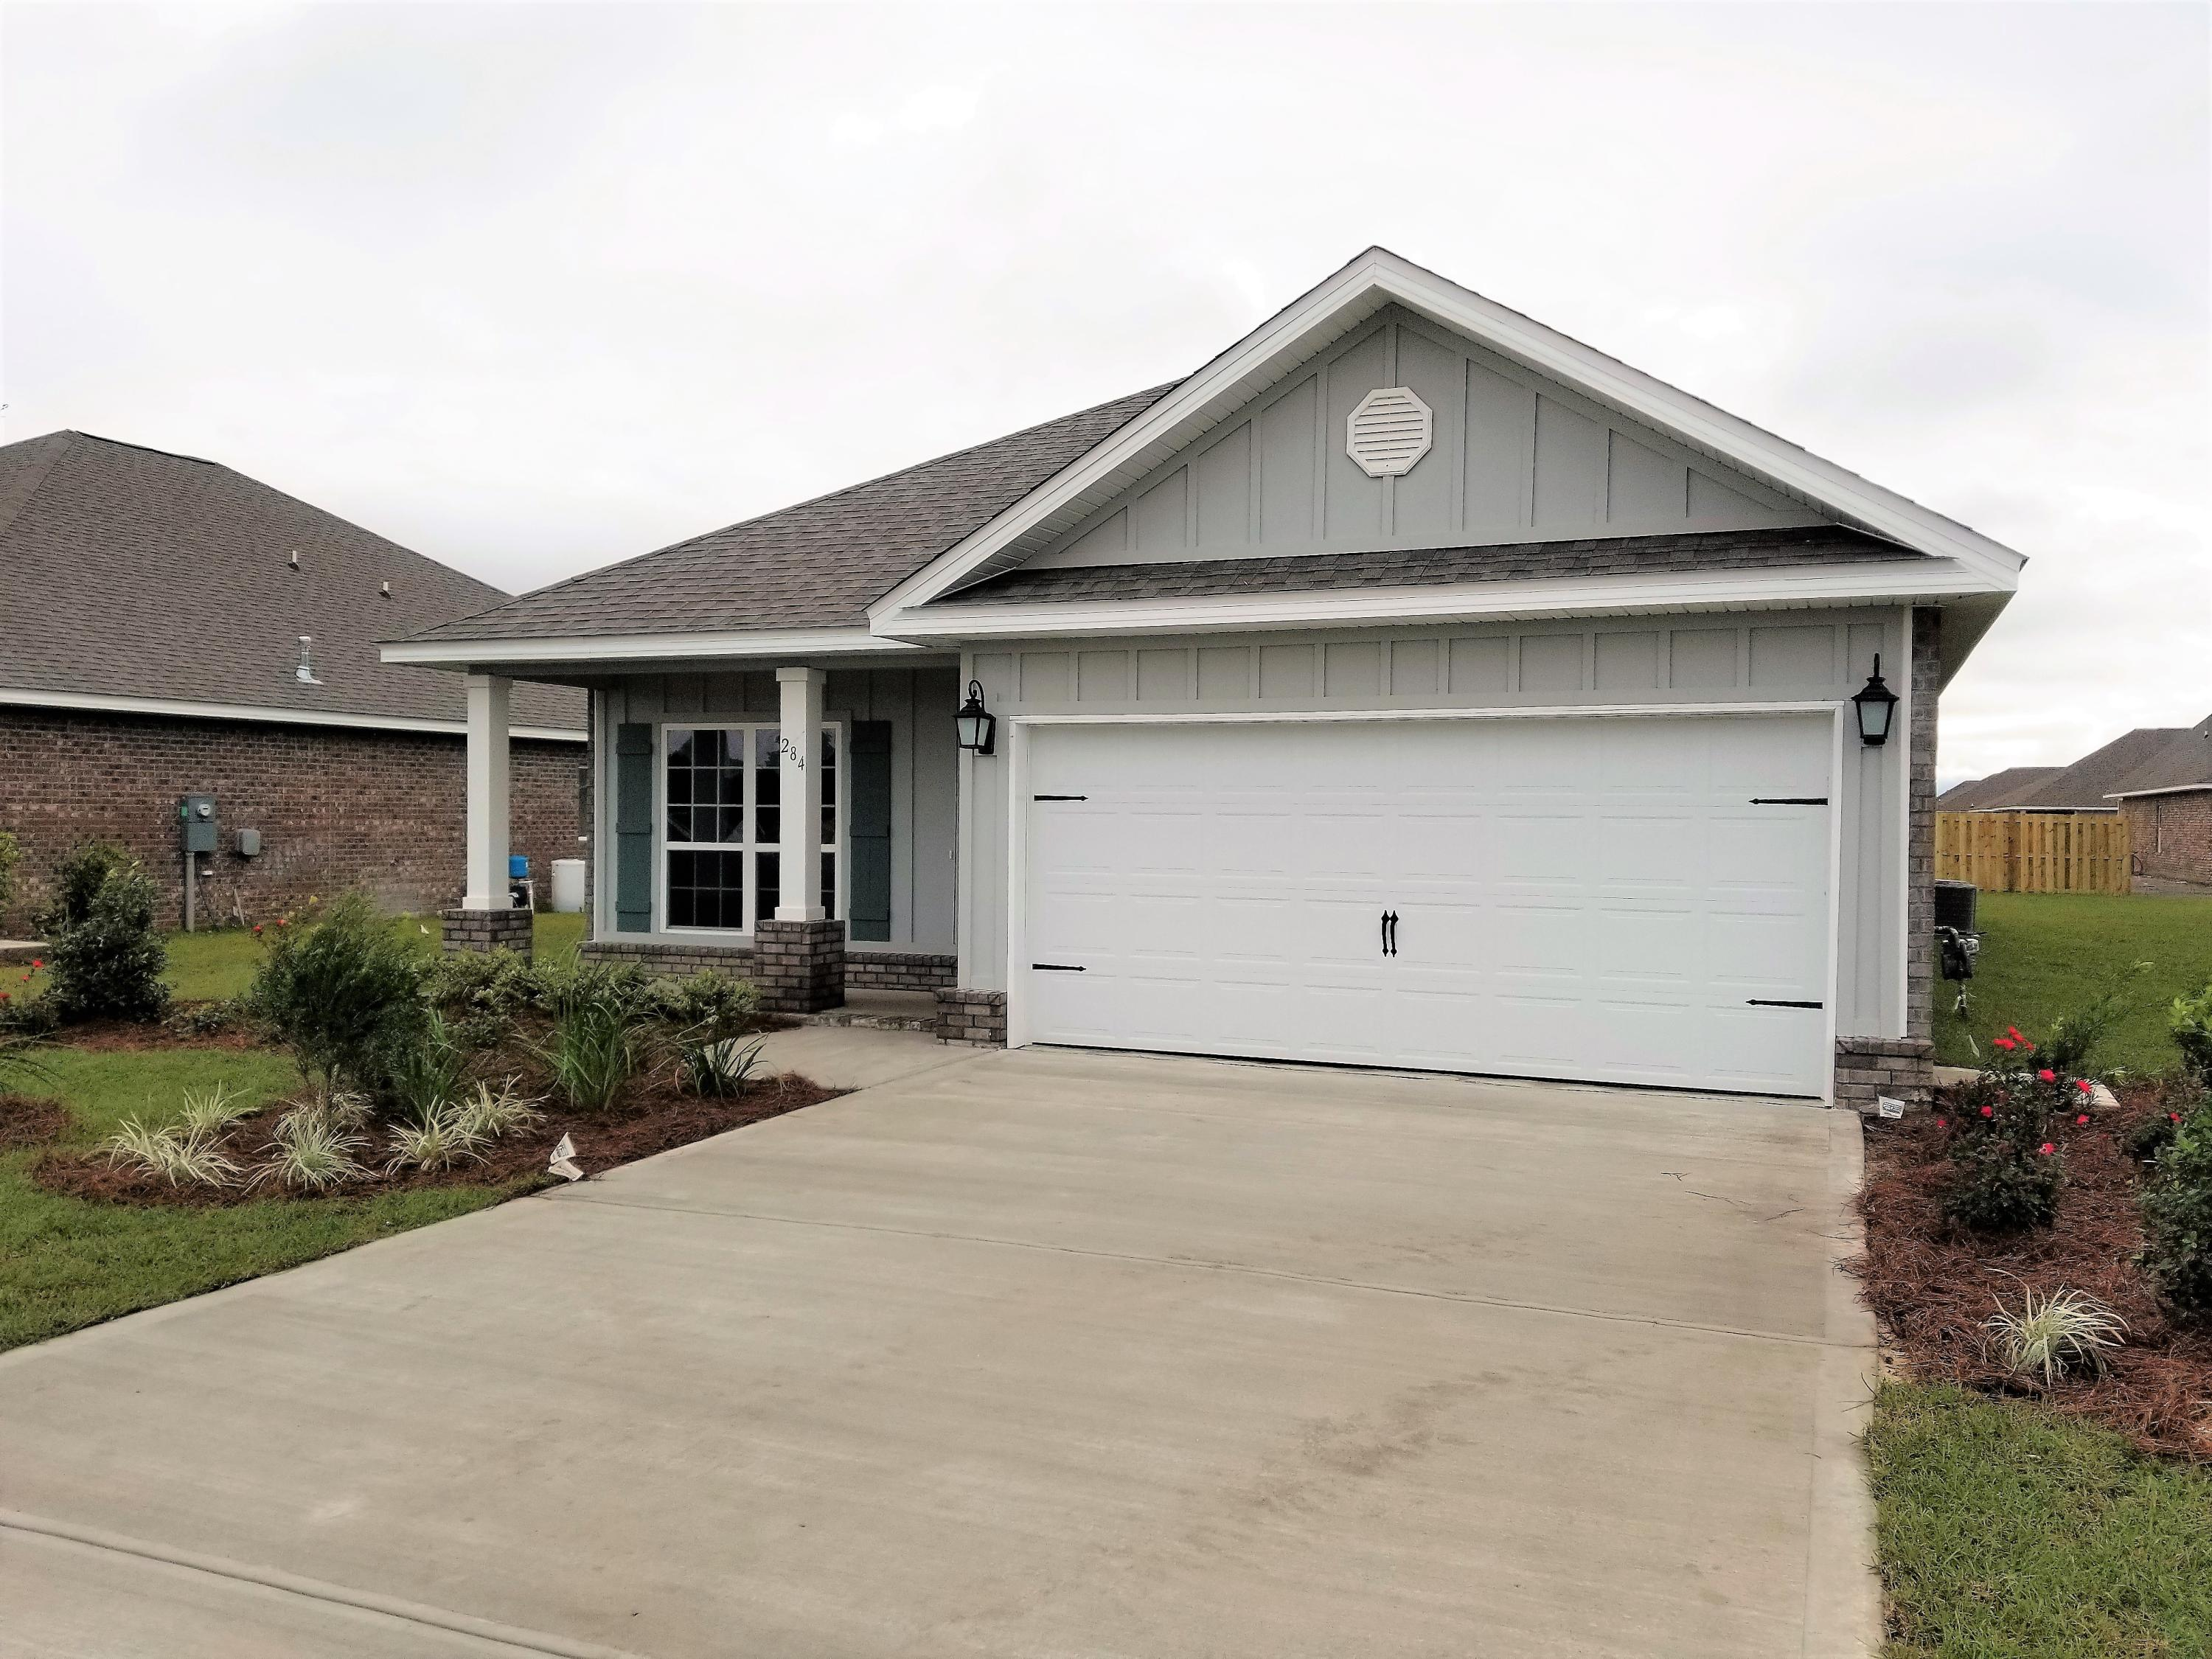 BRAND NEW CONSTRUCTION - Why buy a used home when you can buy a new, never lived in home with a full builders warranty?? Incredible Standard Features in this home INCLUDE: 3 sides brick, gas hot water heater, gas stub for grill and stove, Granite Countertops in kitchen & baths, tile shower in master, Stainless Steel Frigidaire Microwave, Stove & Dishwasher, Brushed Nickel Plumbing Fixtures, Hard surface floors in common areas in the home, baths & utility room, only carpet in bedrooms. Extensive Crown Molding, Designer Brushed Nickel Lighting & so much more Pictures, photographs, floor plans, elevations, features, colors and sizes are approximate for illustration purposes only and will vary from the homes as built. Home and community information including pricing, included features, terms, availability and amenities are subject to change and prior sale at any time without notice or obligation. For Move-In/Completion Estimates: Ready dates are estimates only. Timing of completion of construction and buyer move-in are subject to contingencies contained in home purchase agreement and governing jurisdictions issuance of a certificate of occupancy, and may change due to forces majeures and other delays or disruptions outside the reasonable control of D.R. Horton, Inc.